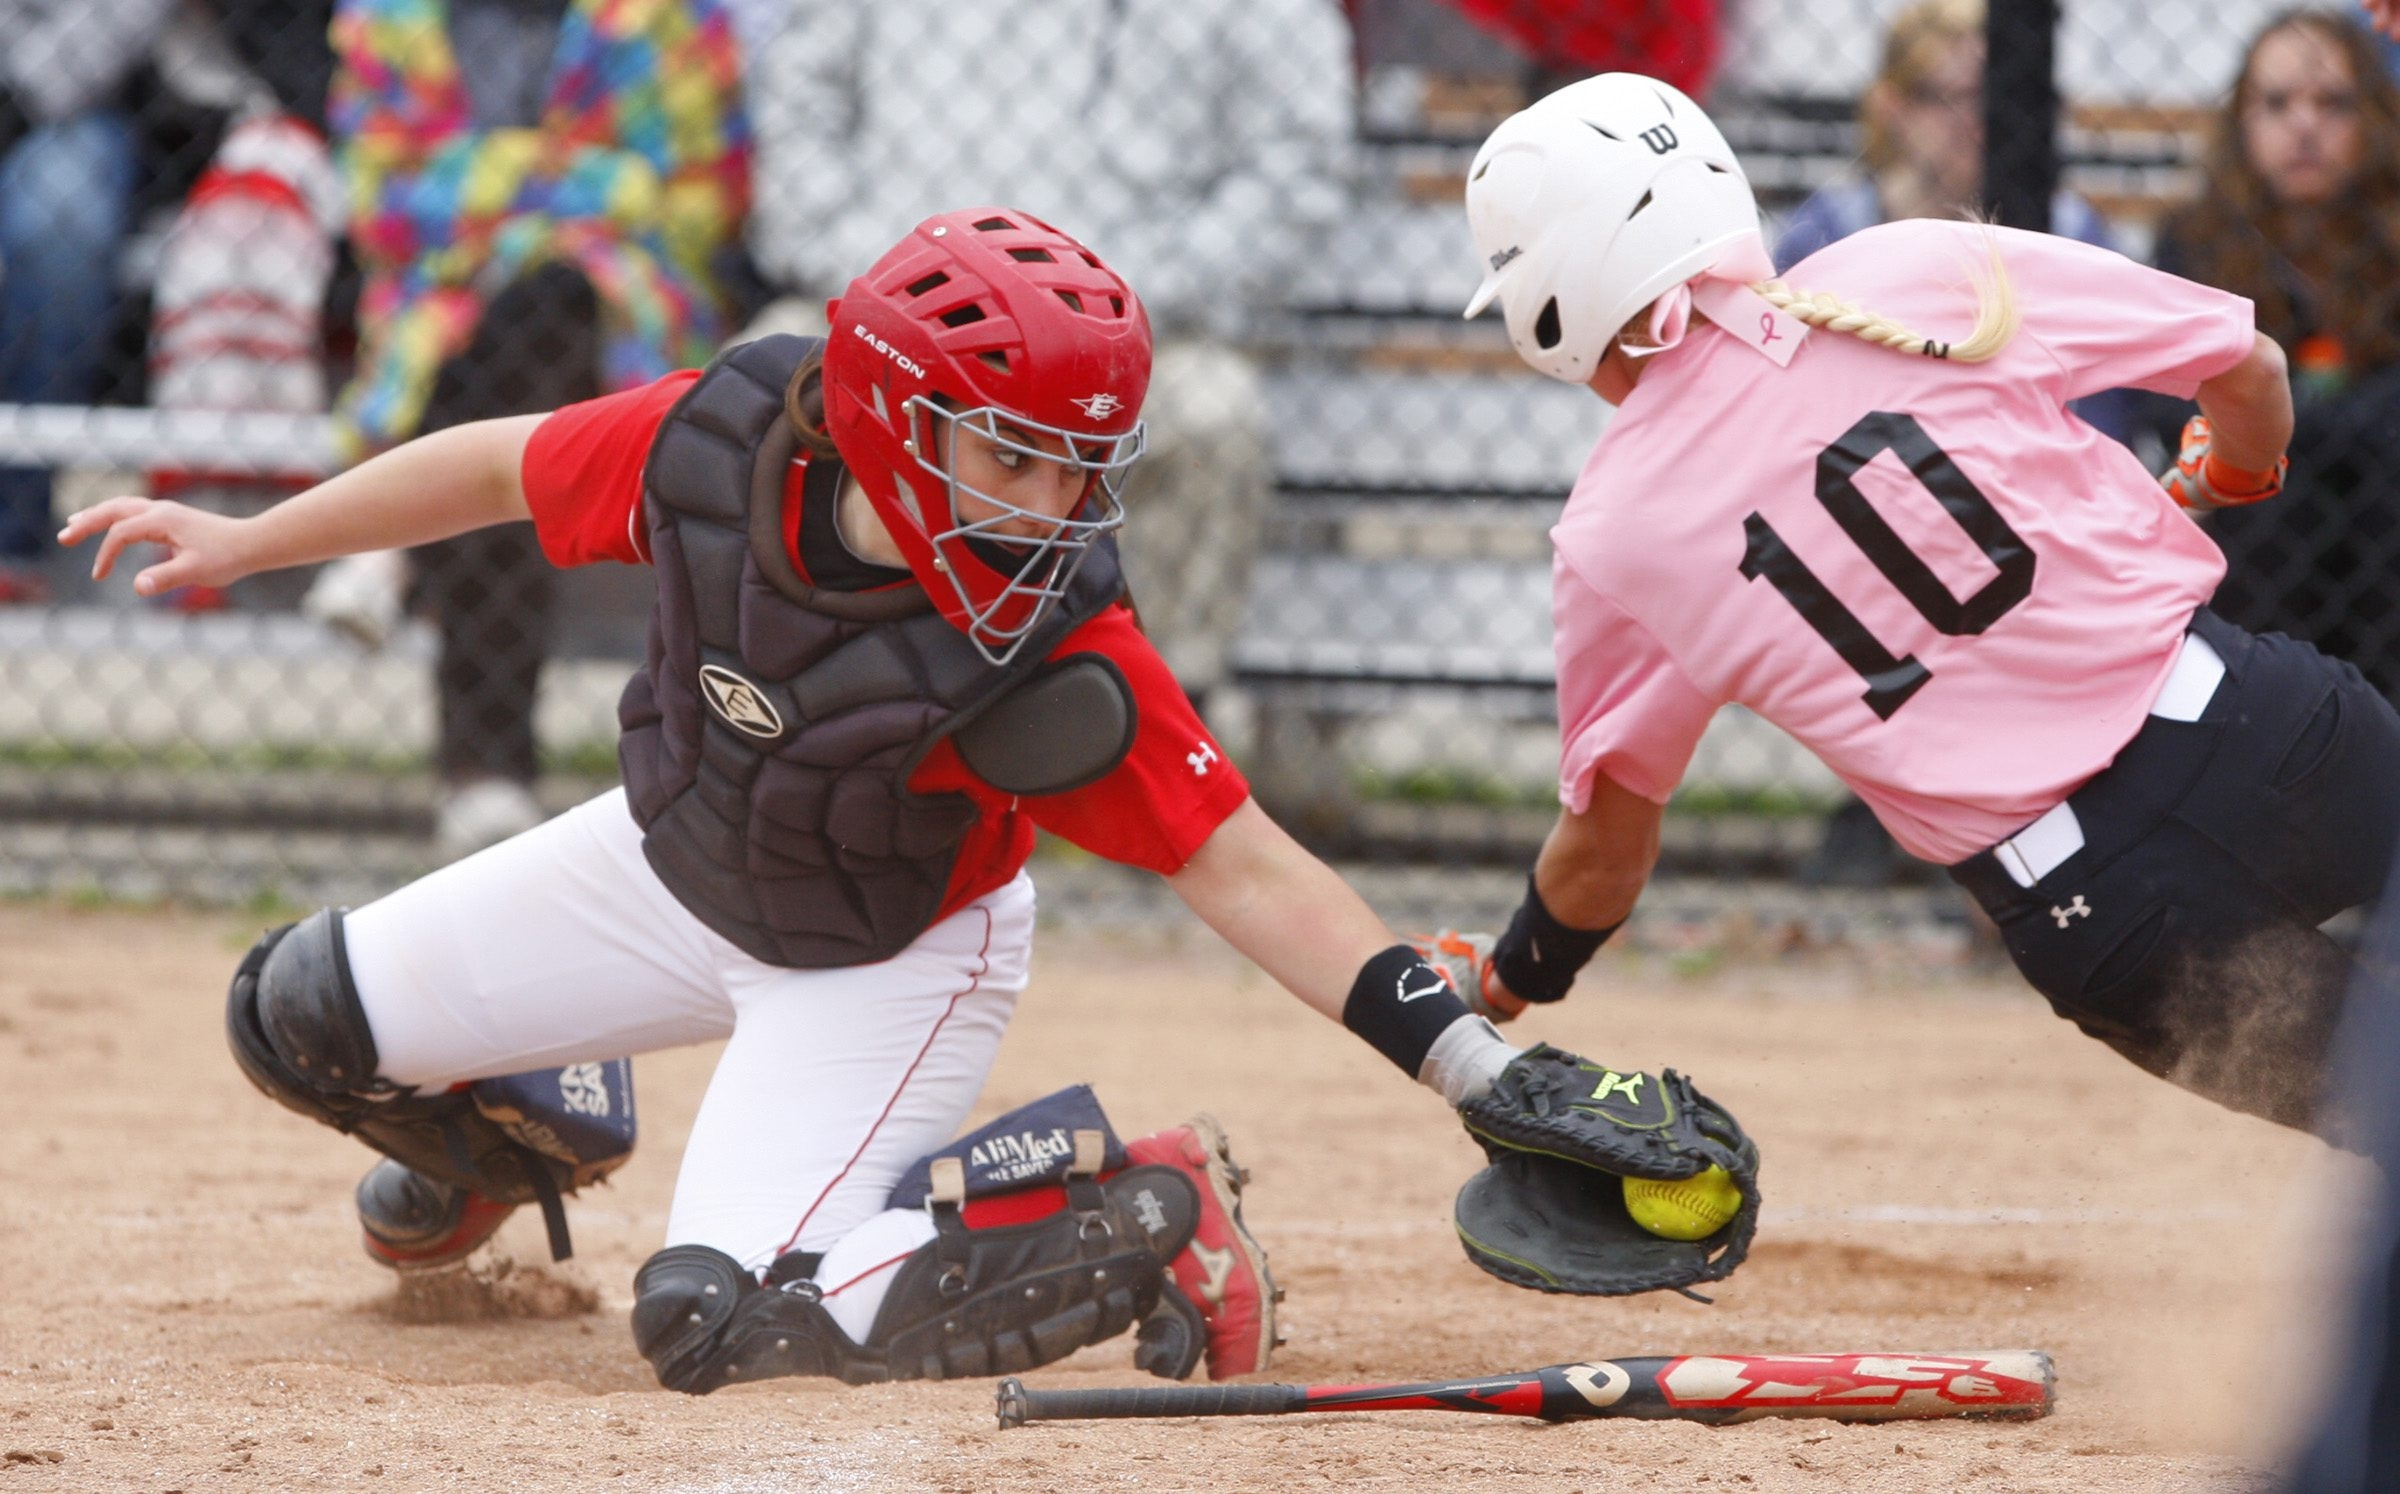 Buffalo State's Carly Knight (Lew-Port) avoids the tag in a doubleheader loss to Cortland. The Bengals wore pink uniforms to help raise money to assist in the battle against cancer. See photo gallery at buffalonews.com